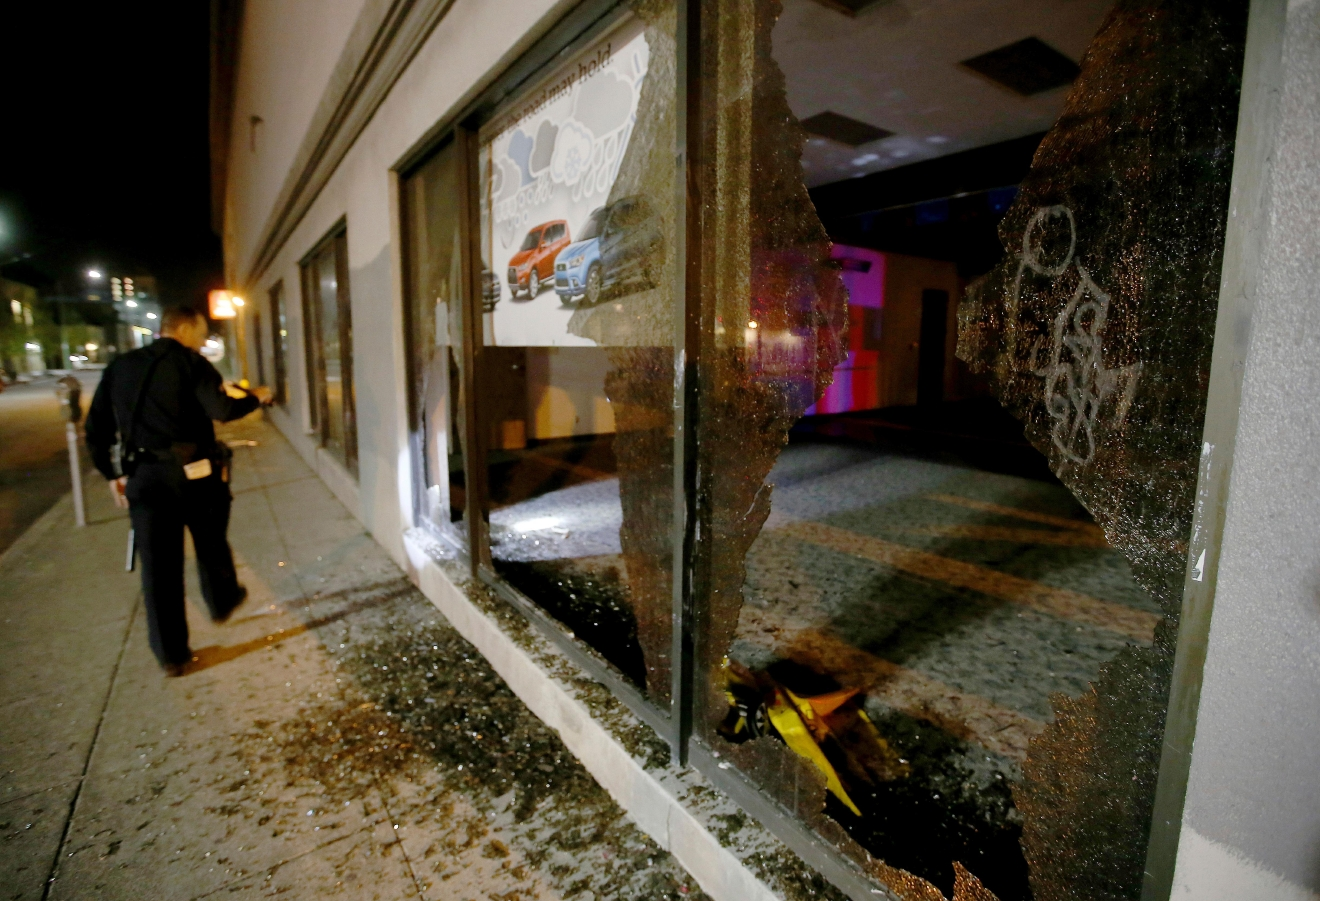 An Oakland police officer checks out damage after a window was broken by protesters at a car dealership in downtown Oakland, Calif., on Wednesday, Nov. 9, 2016. President-elect Donald Trump's victory set off multiple protests. (Jane Tyska/Bay Area News Group via AP)